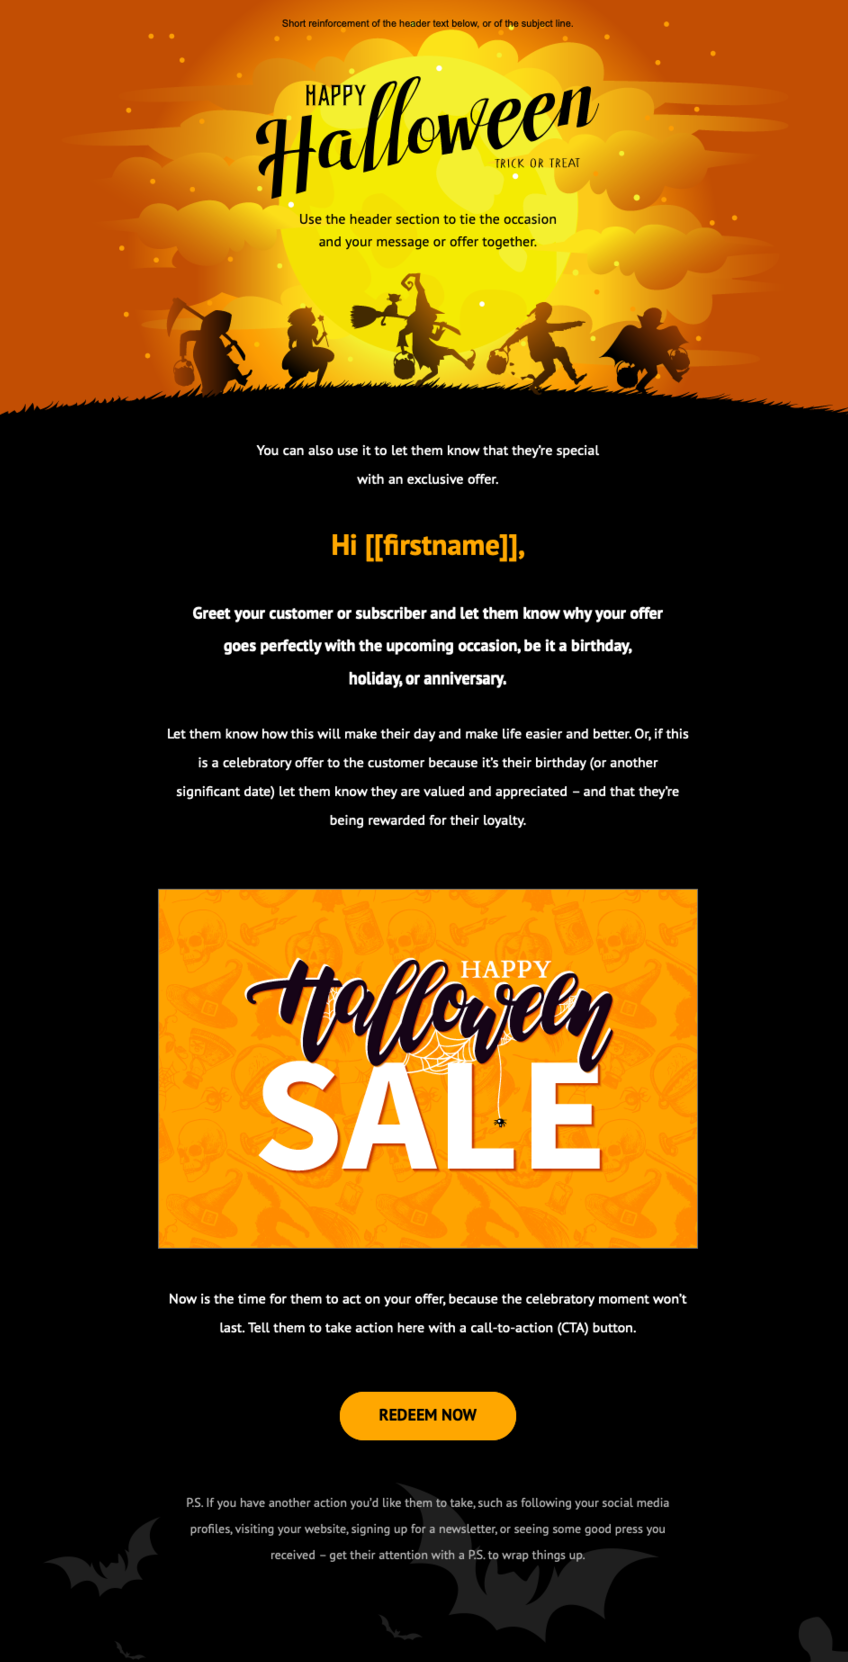 Free halloween email template available in the new GetResponse Email Creator. It features a bold themed banner, halloween color scheme, and a strong call to action button.